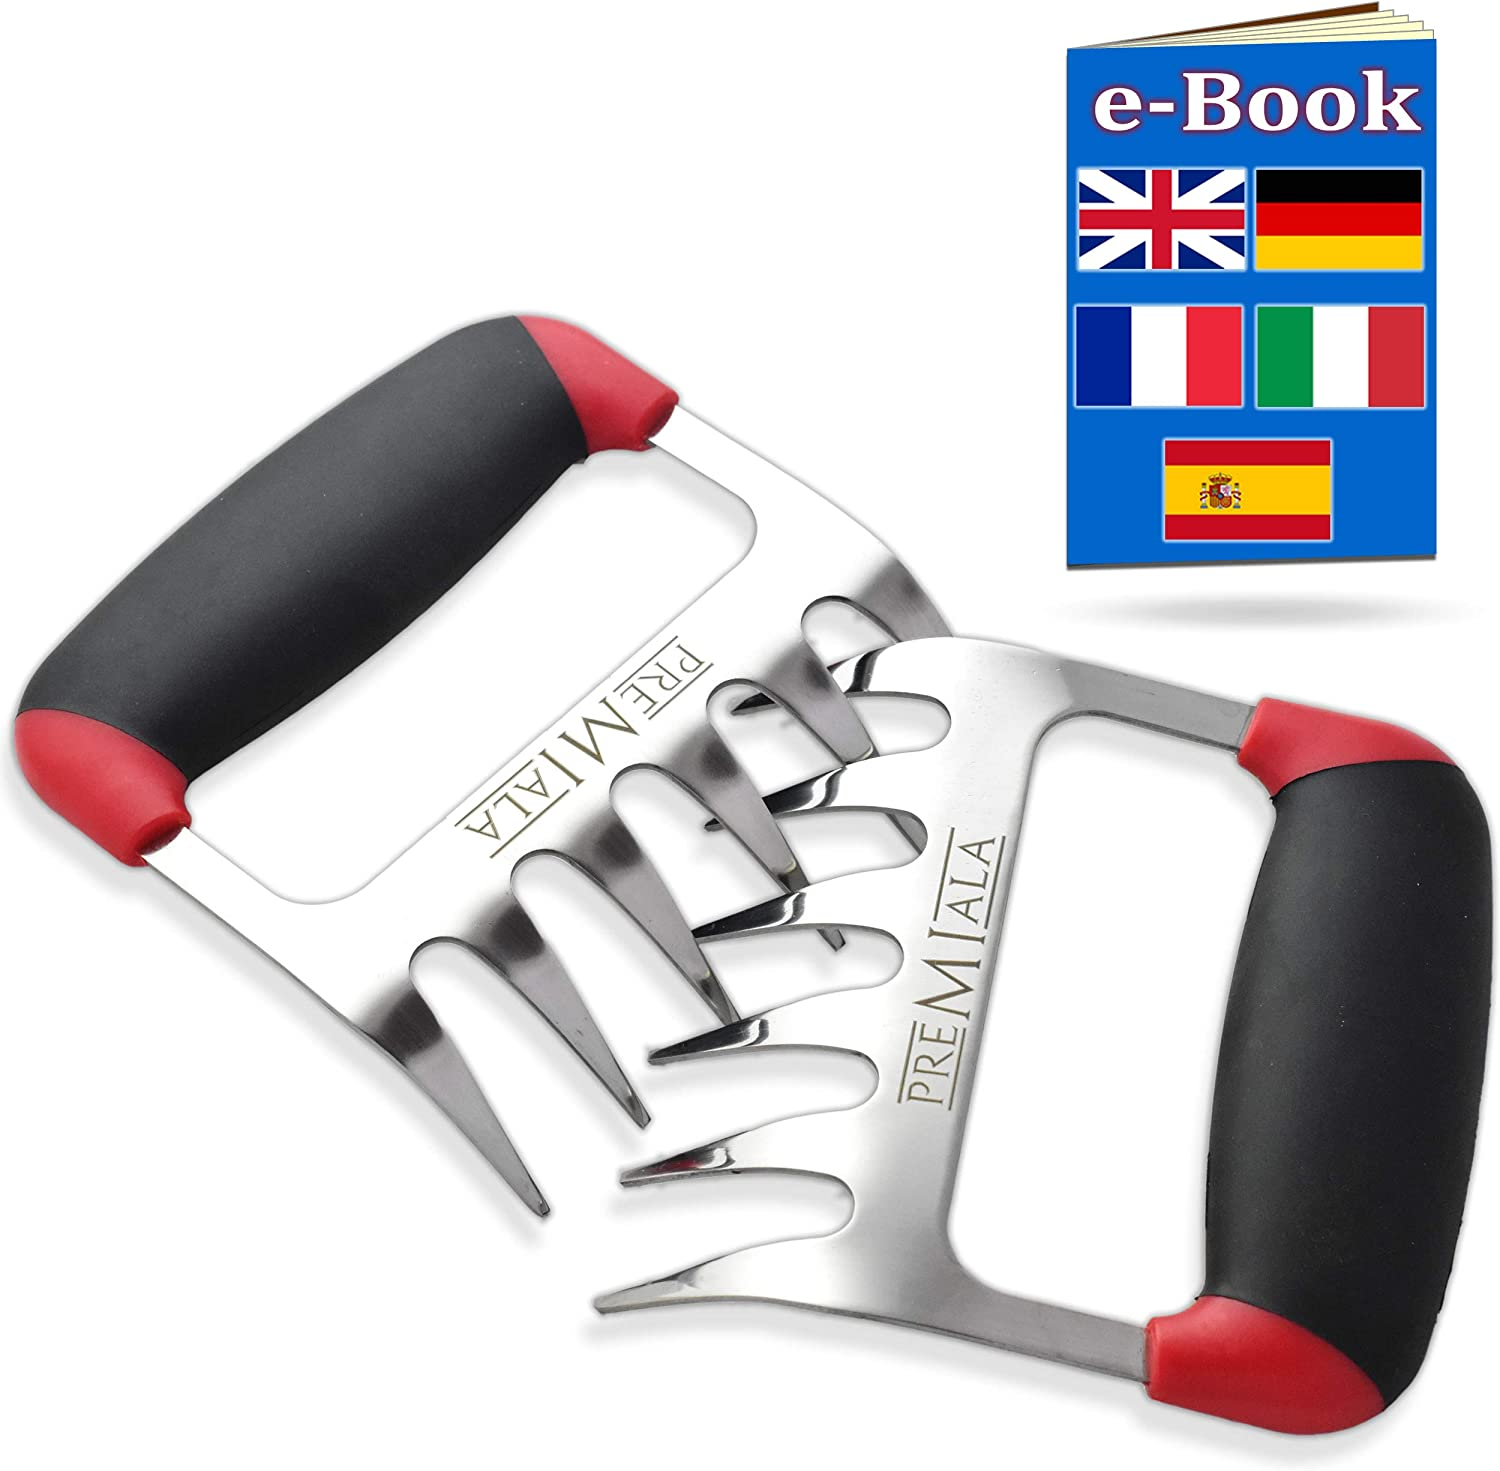 Meat Claws - Incredible 3-in-1 Meat Shredder Claws Stainless Steel! Bear Paws with Soft Rubber Handles for Ultra Comfort –Shreds BBQ Meat Quickly and Easily!